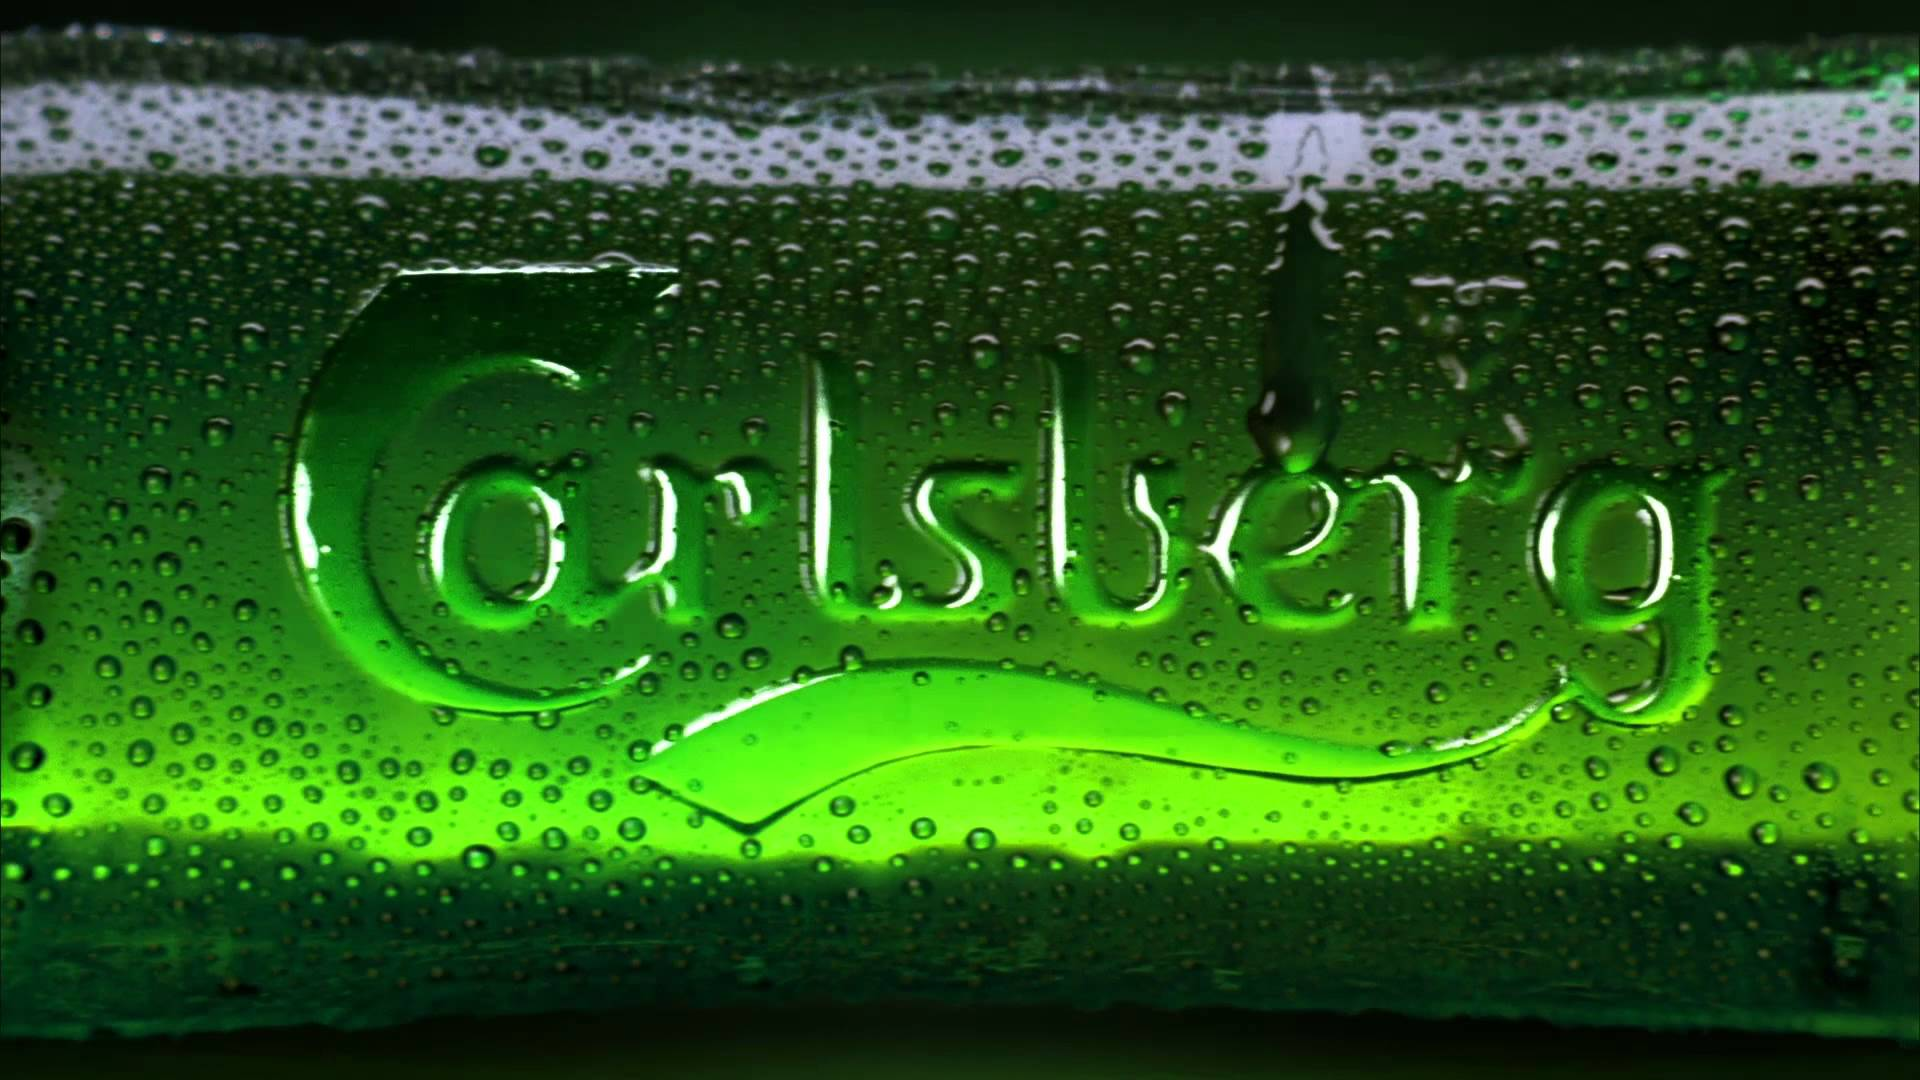 Football Wallpapers Hd For Android Carlsberg Wallpapers High Quality Download Free